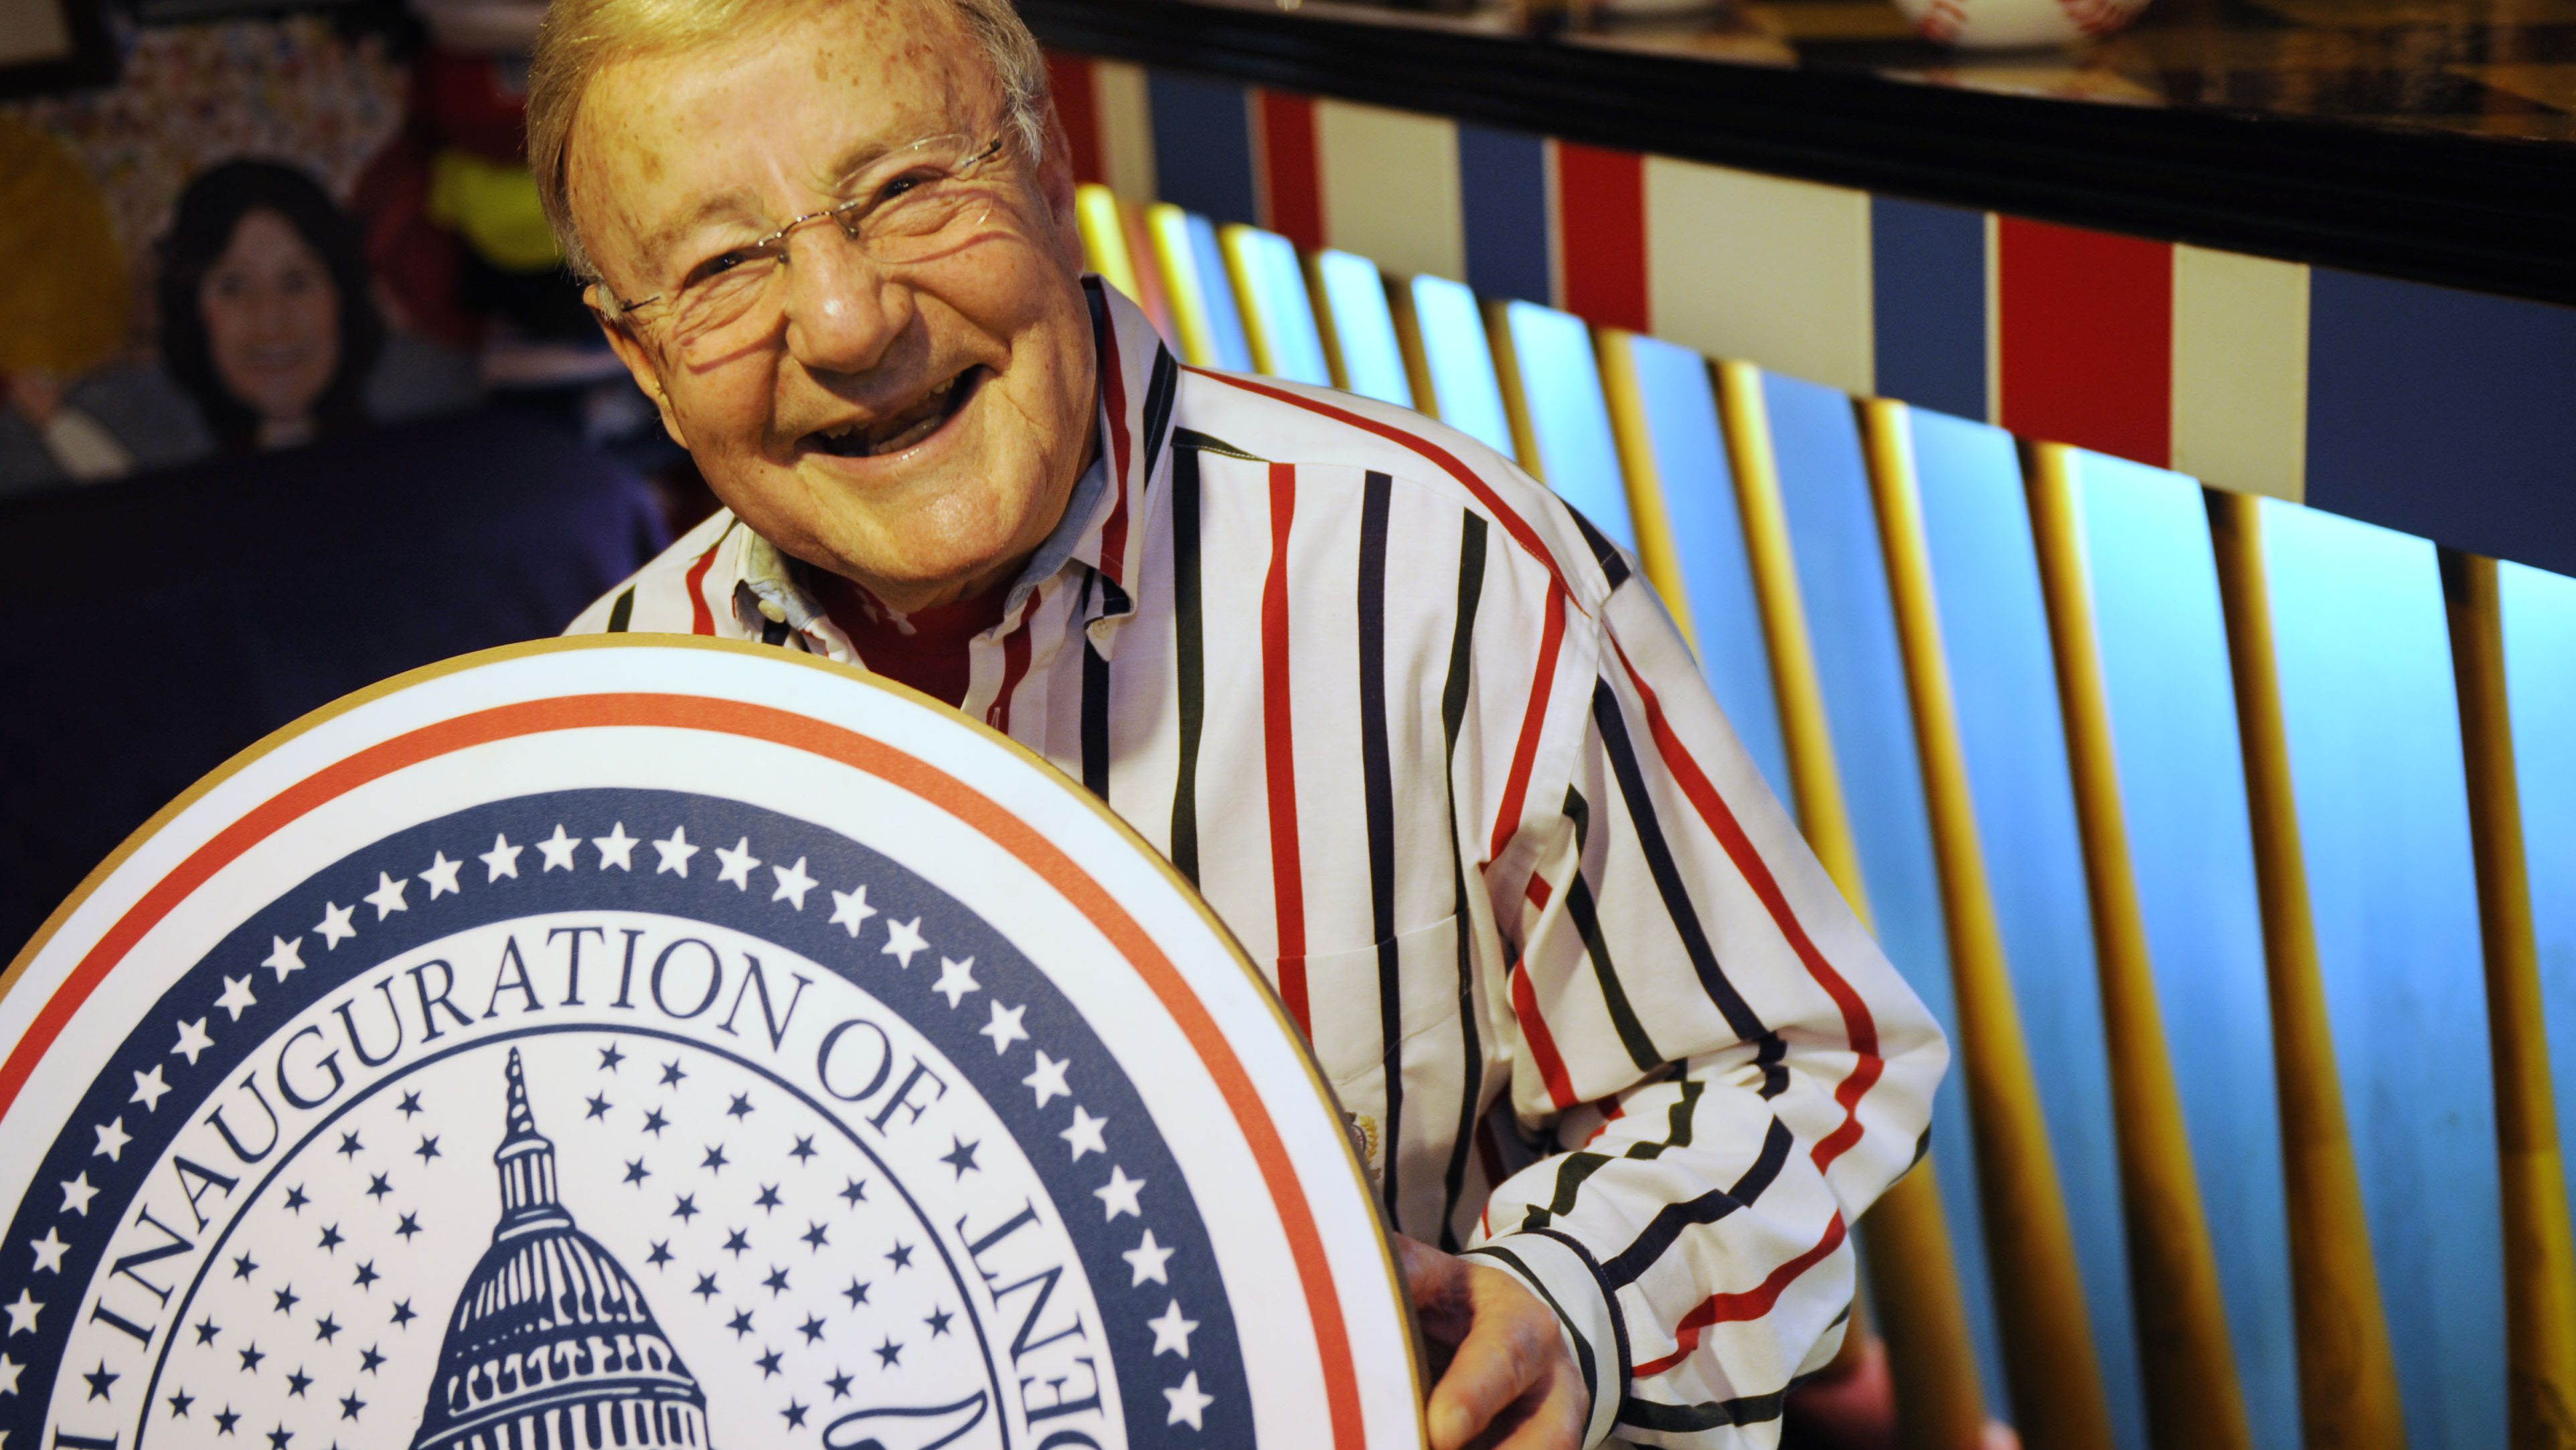 Charlie Brotman, 81, holds a large inaugural seal from 2005's inauguration, in his basement in Takoma Park, Md., Thursday, Jan. 8, 2009. Brotman has been an announcer at presidential inaugurations since 1957. (AP Photo/Jacquelyn Martin)